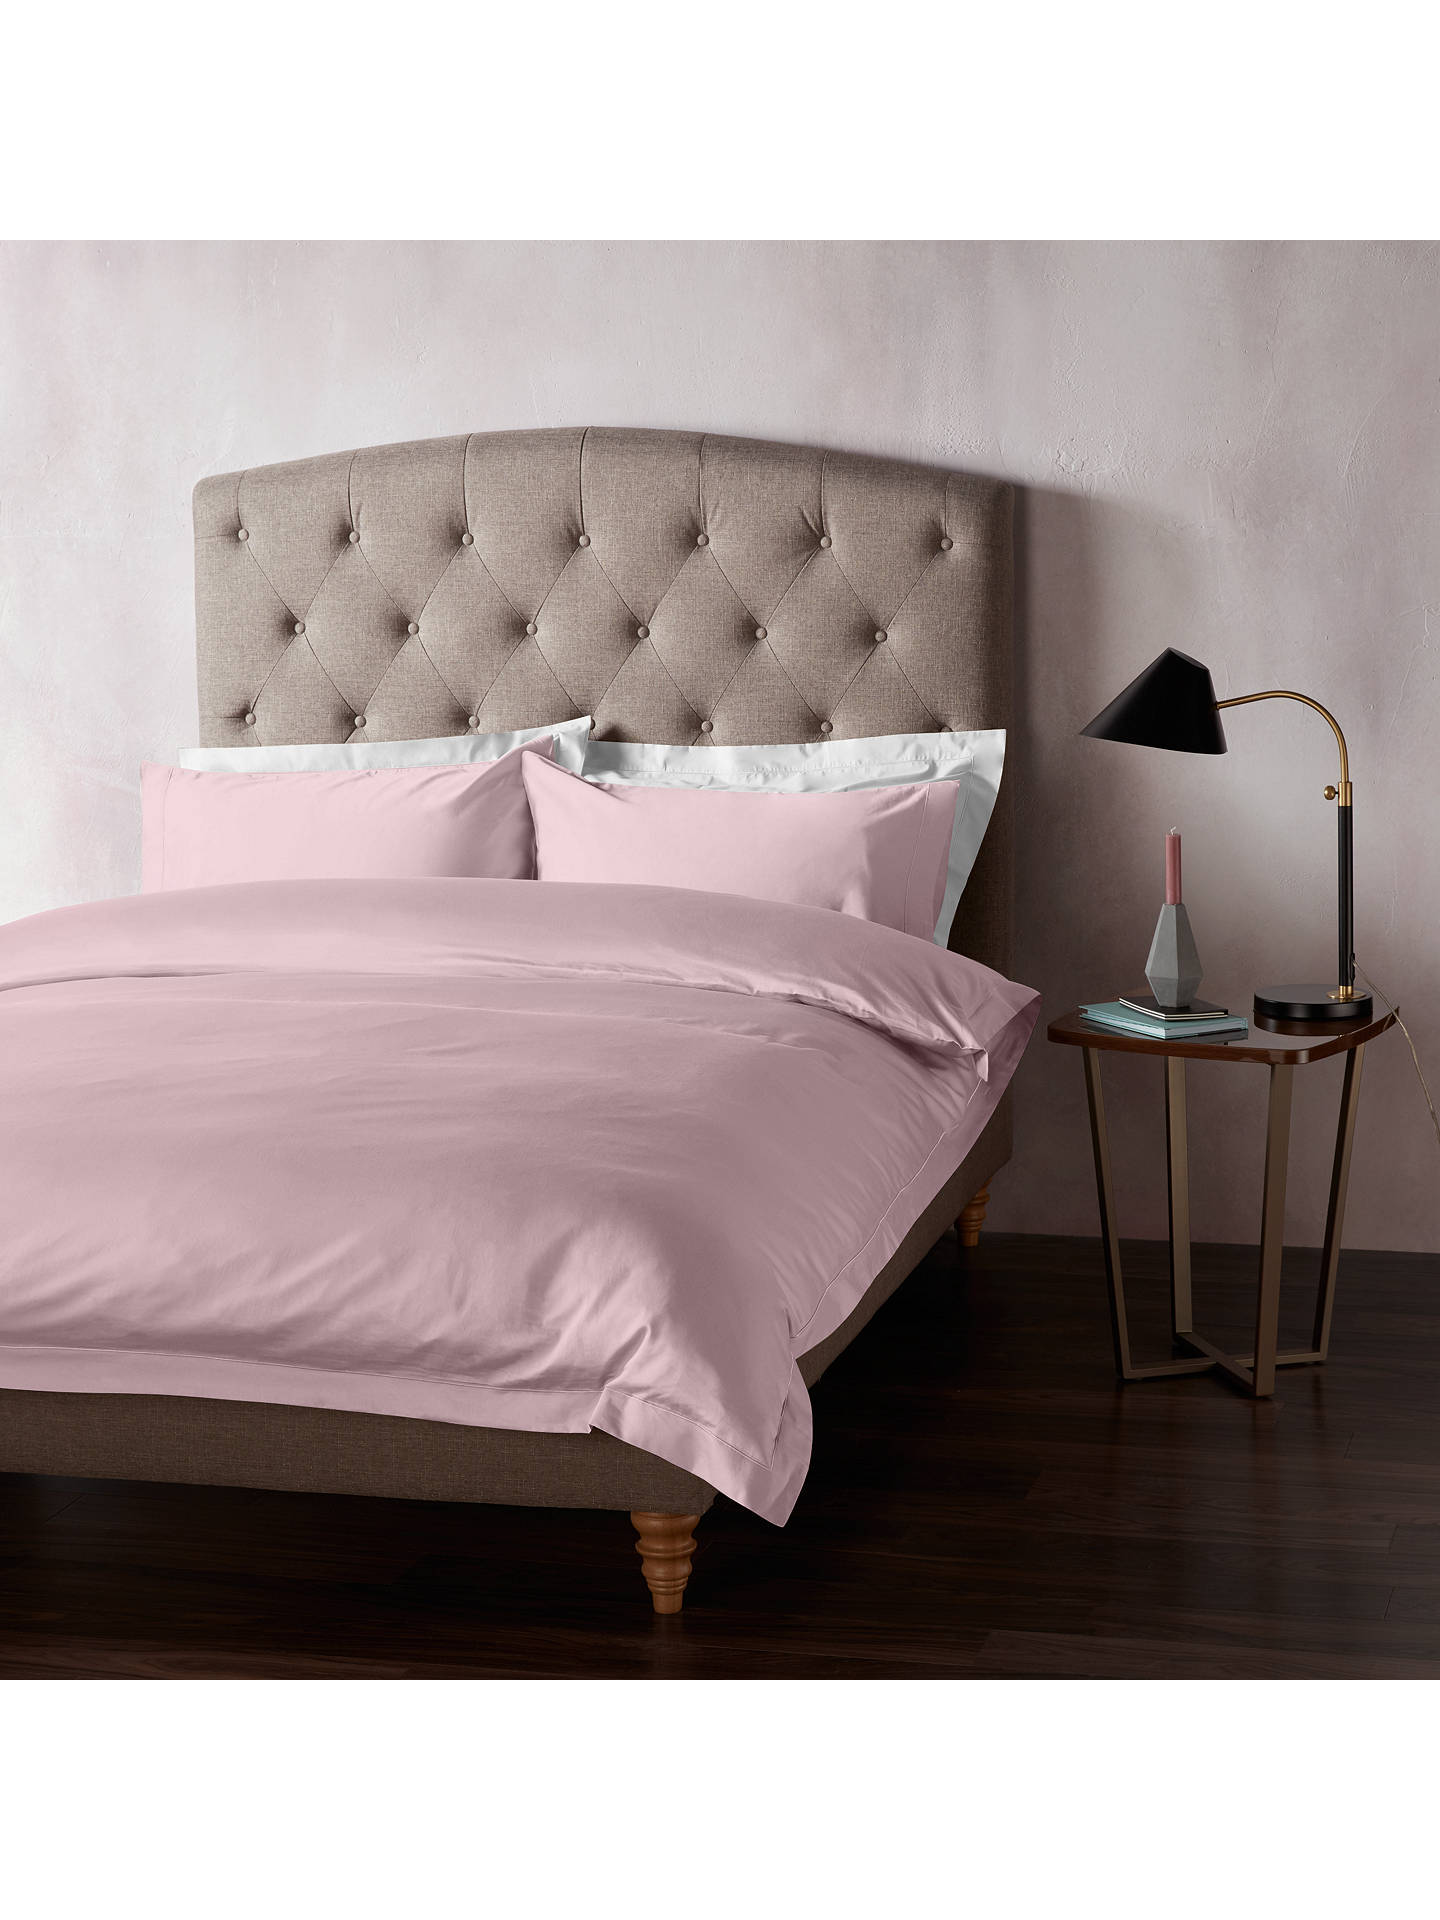 Buy John Lewis & Partners 400 Thread Count Soft & Silky Egyptian Cotton Super King Duvet Cover, Mauve Online at johnlewis.com